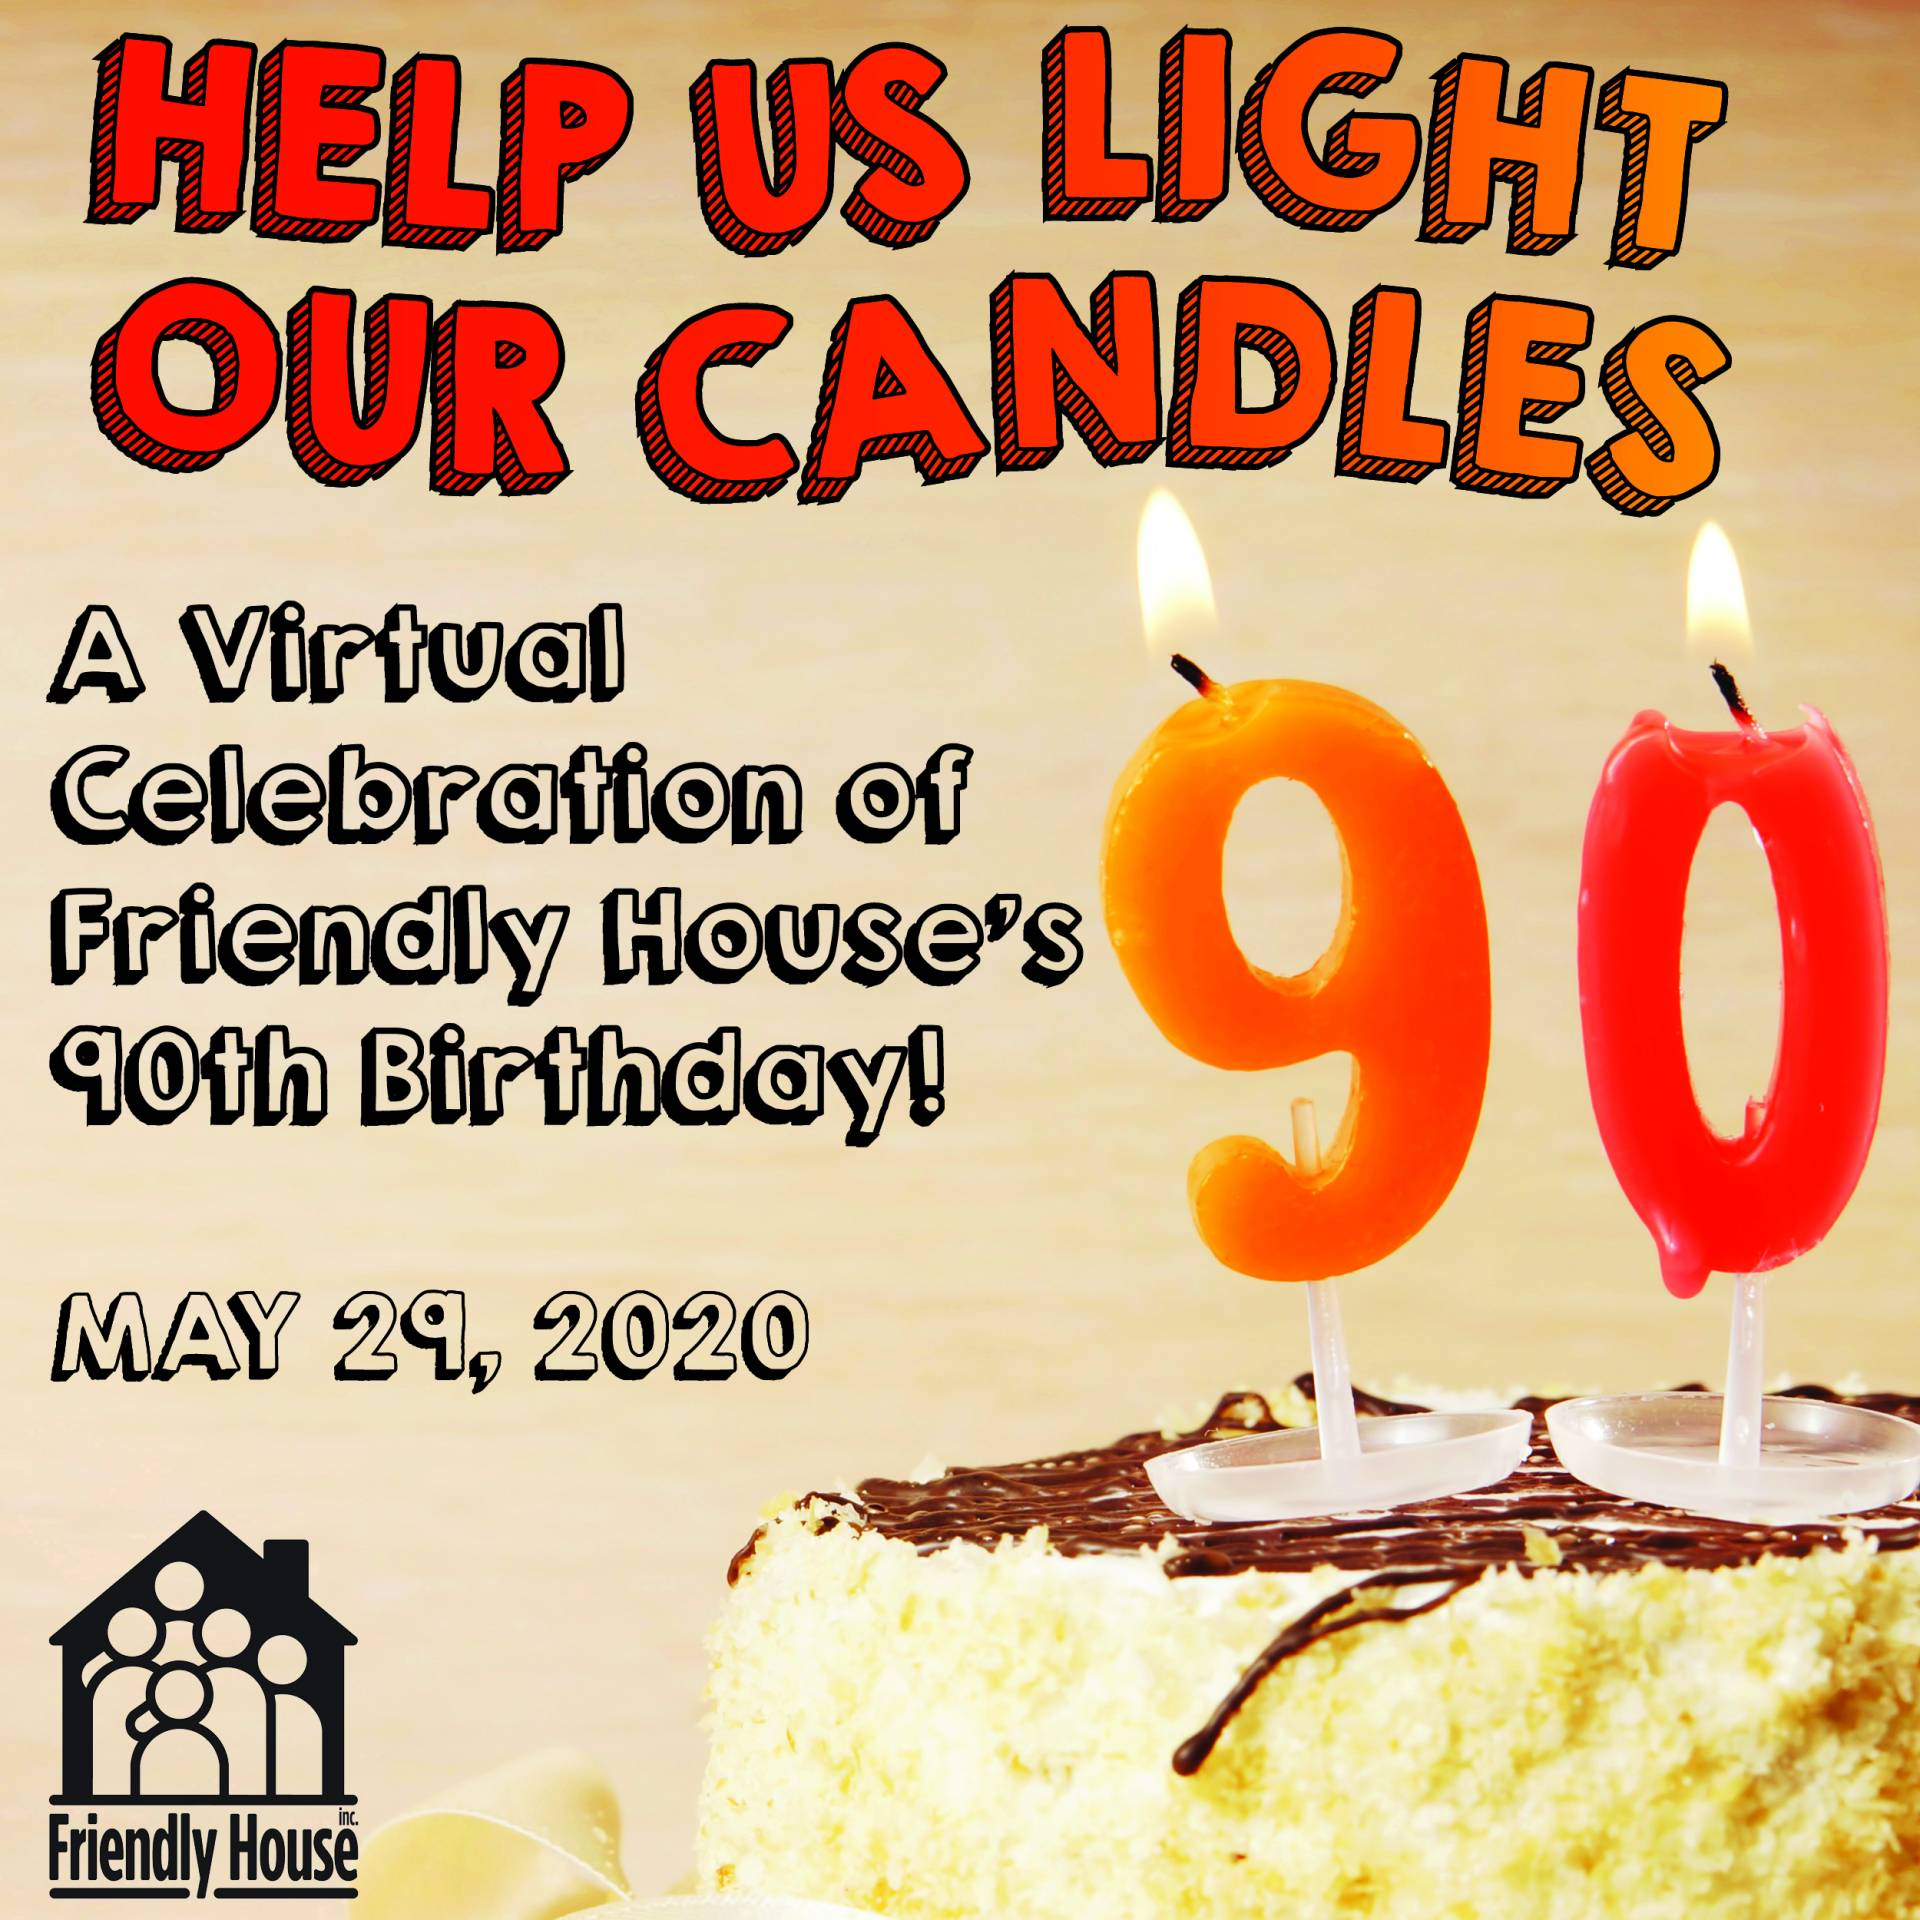 (Image of birthday candles) Help Us Light Our Candles: A Virtual Celebration of Friendly House's 90th Birthday. May 29, 2020.